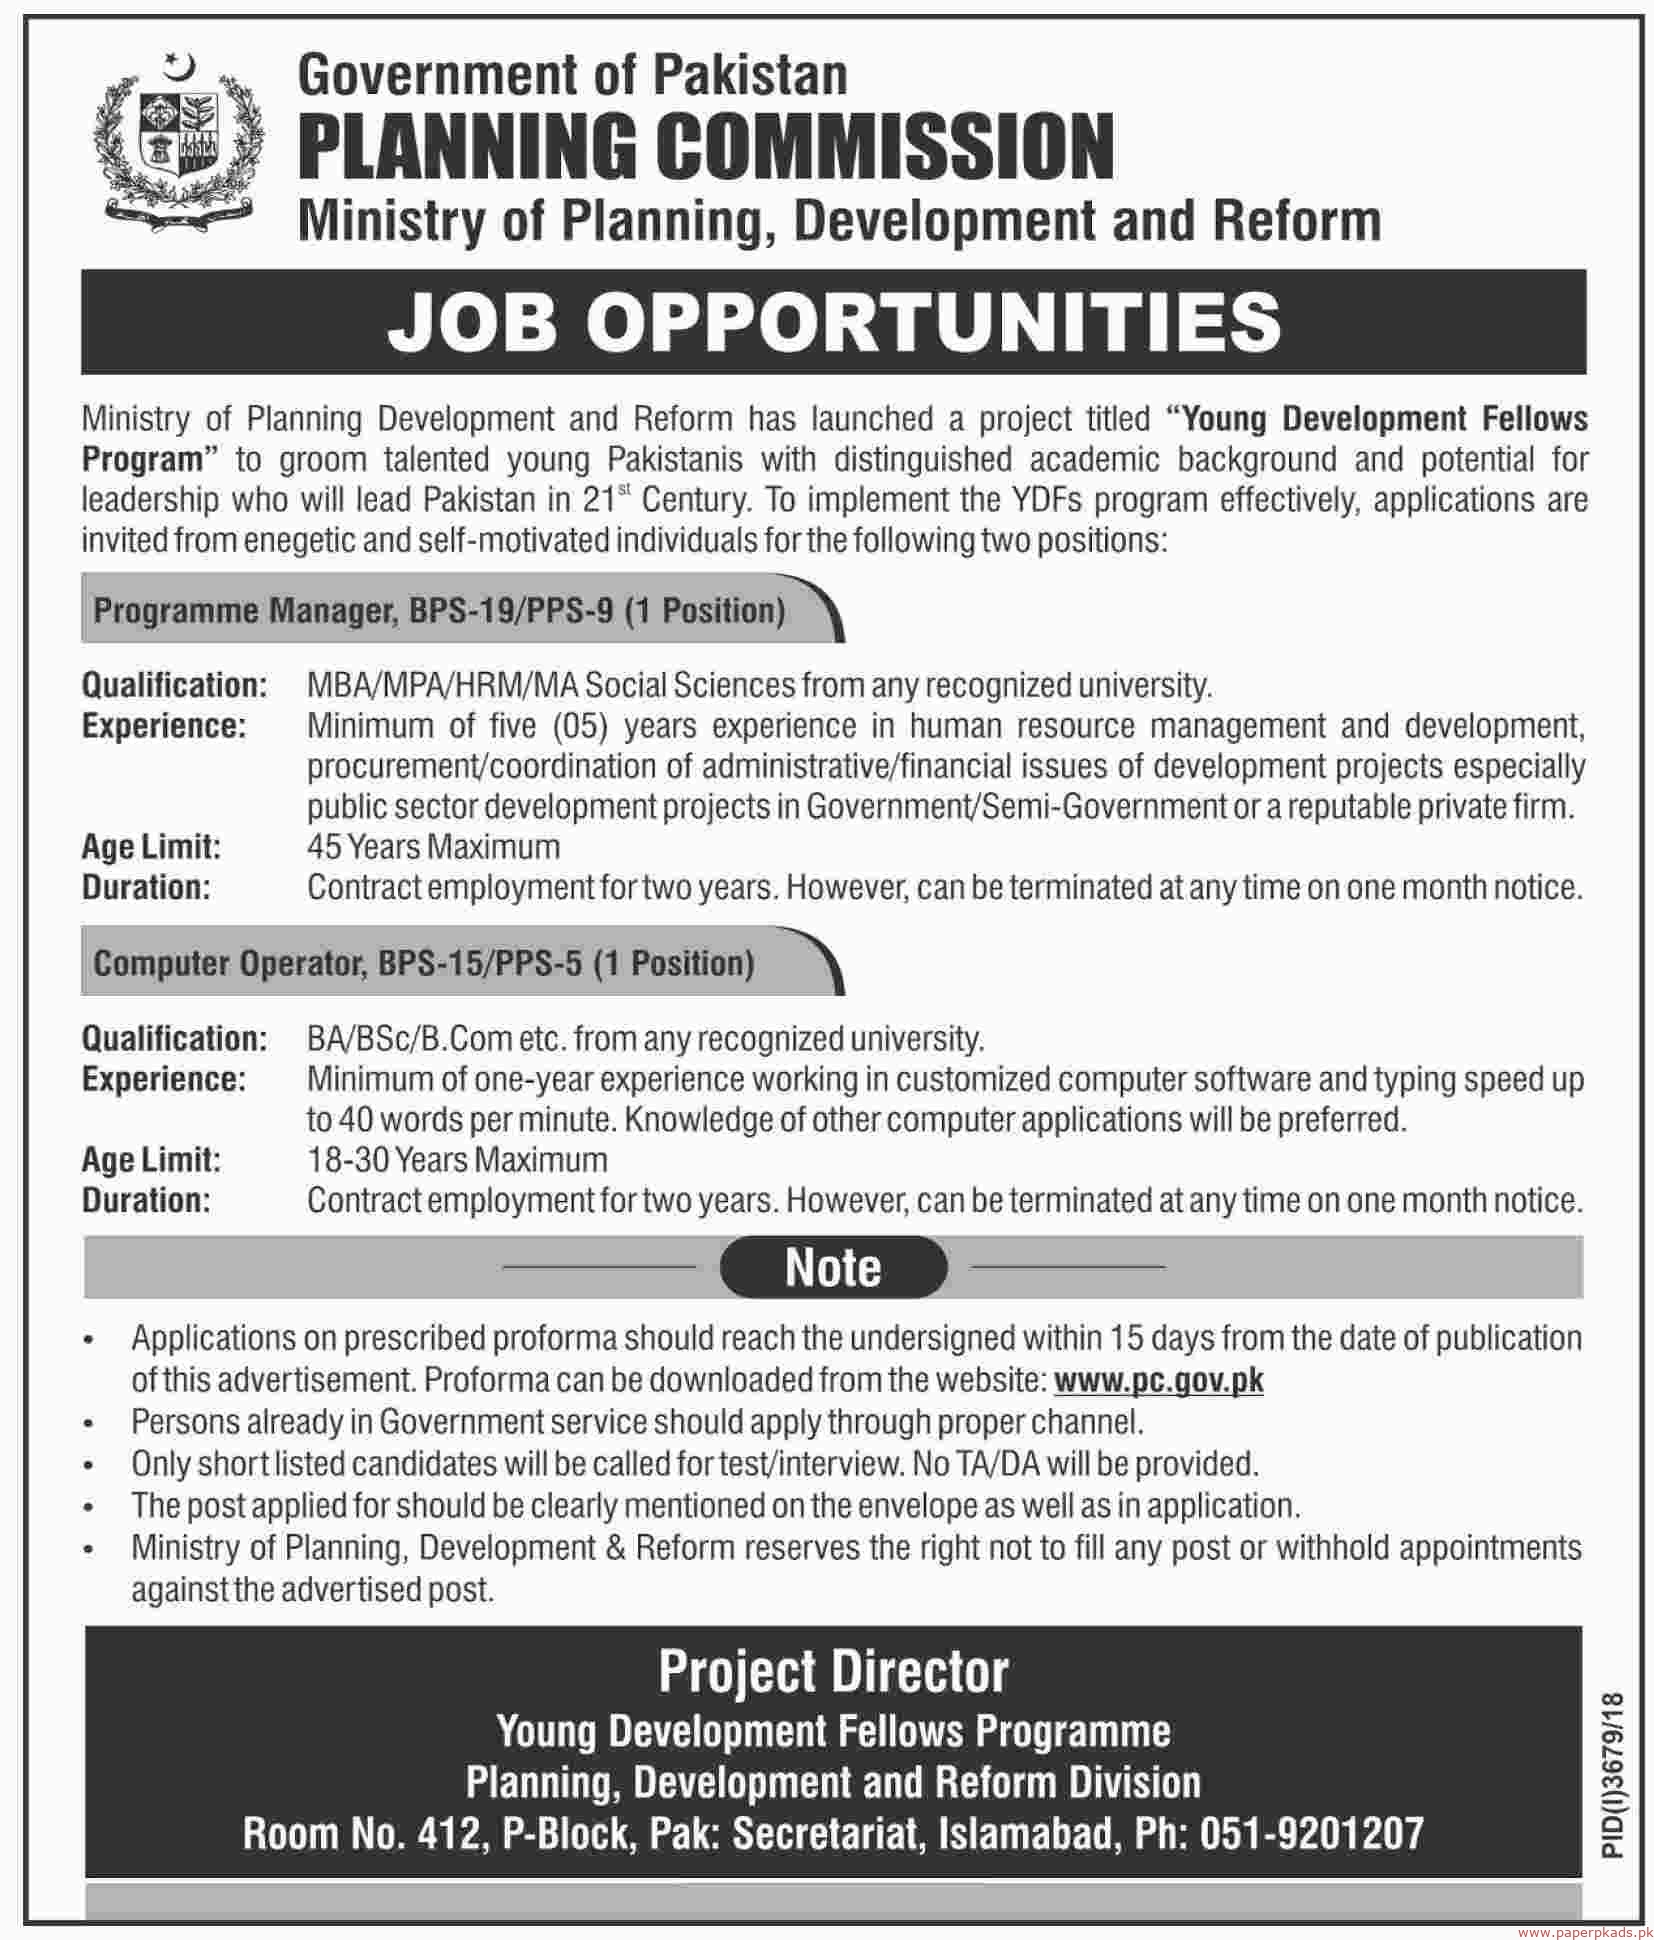 Government of Pakistan Latest Jobs 2019